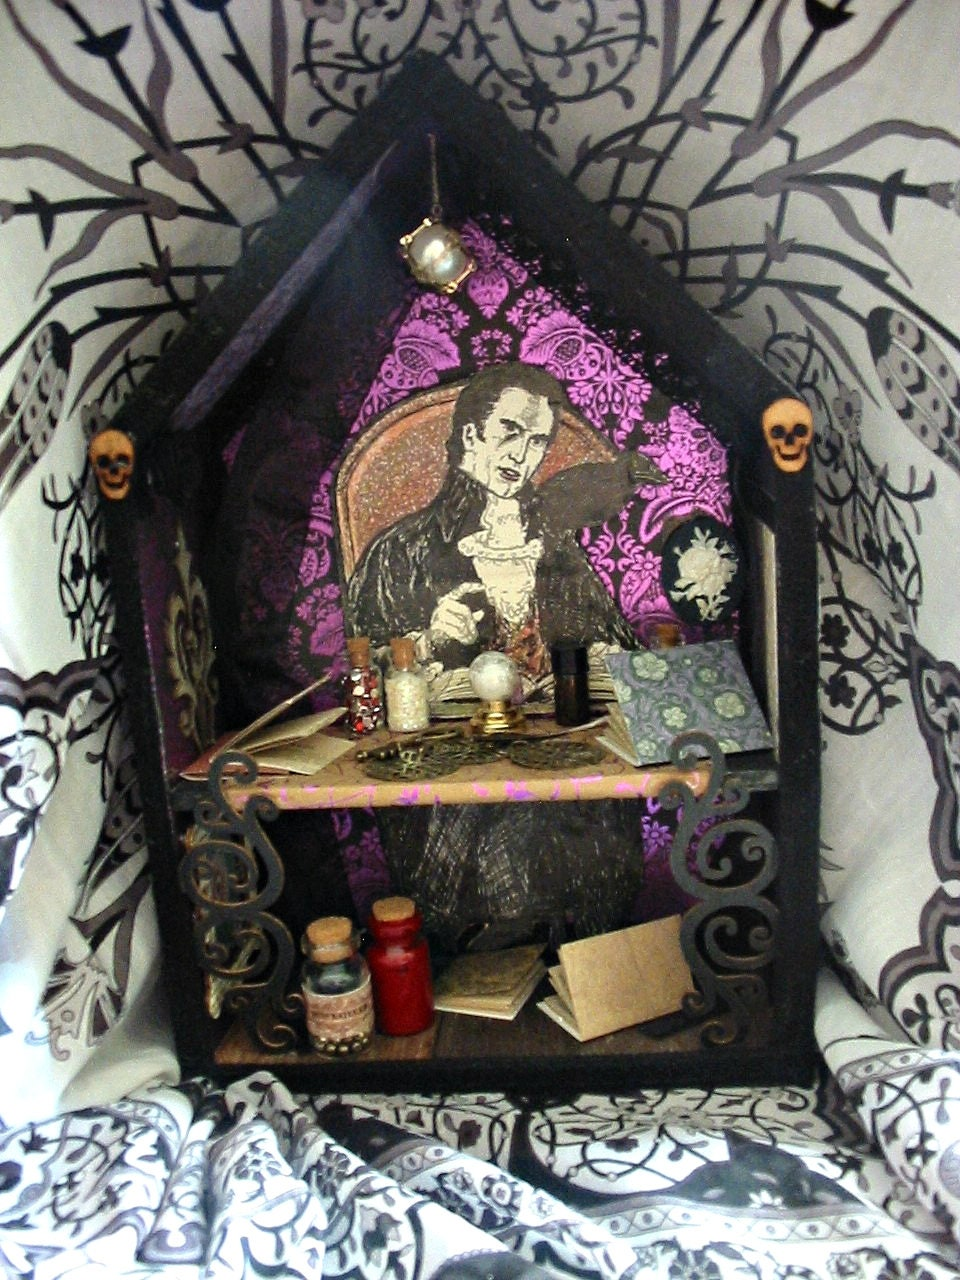 Miniature Children S Bedroom Room Box Diorama: Vampire Roombox/diorama. Miniature Vampire Room.Spooky